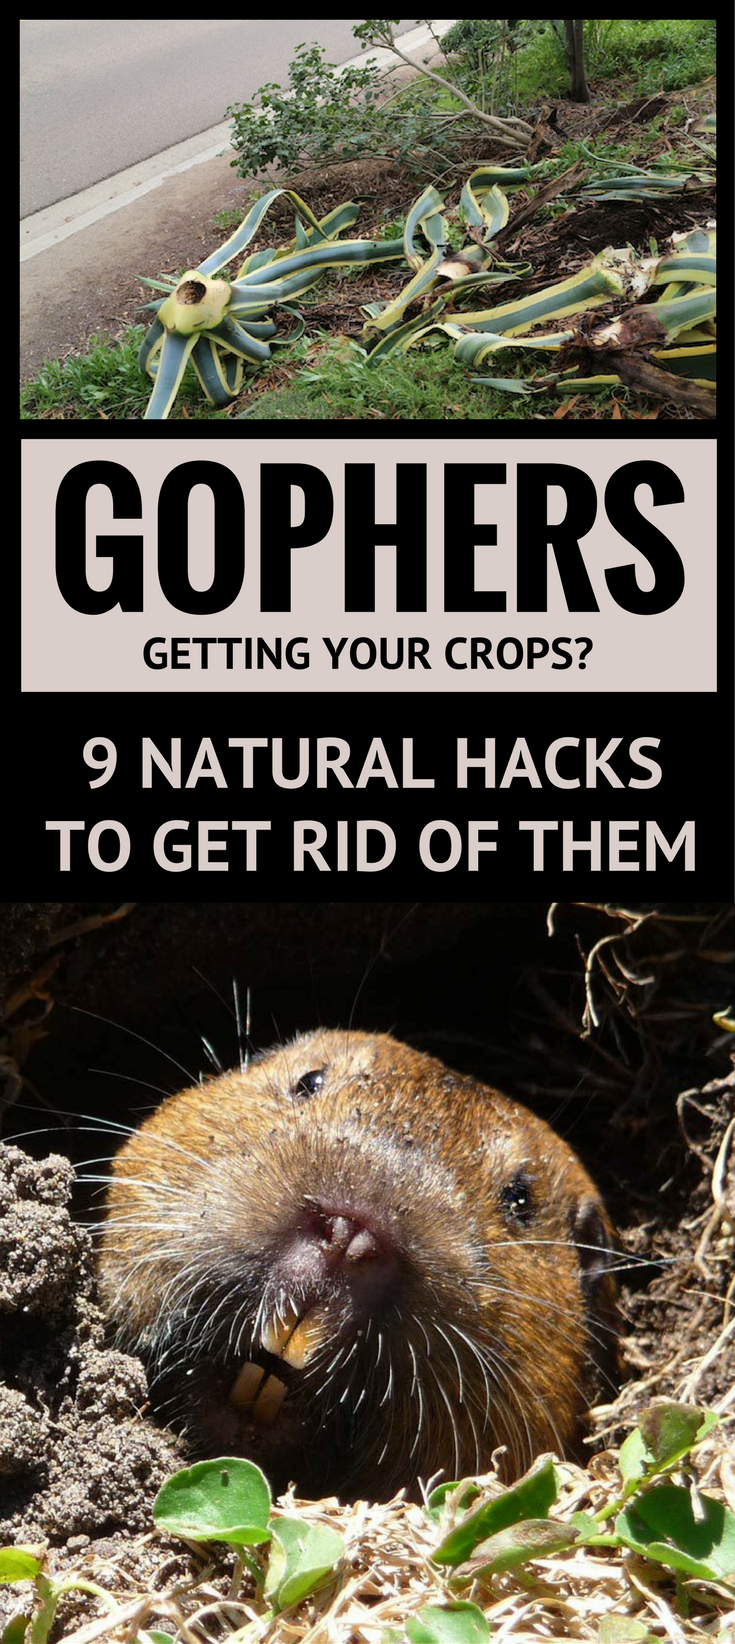 gophers getting your crops 9 natural hacks to get rid of them